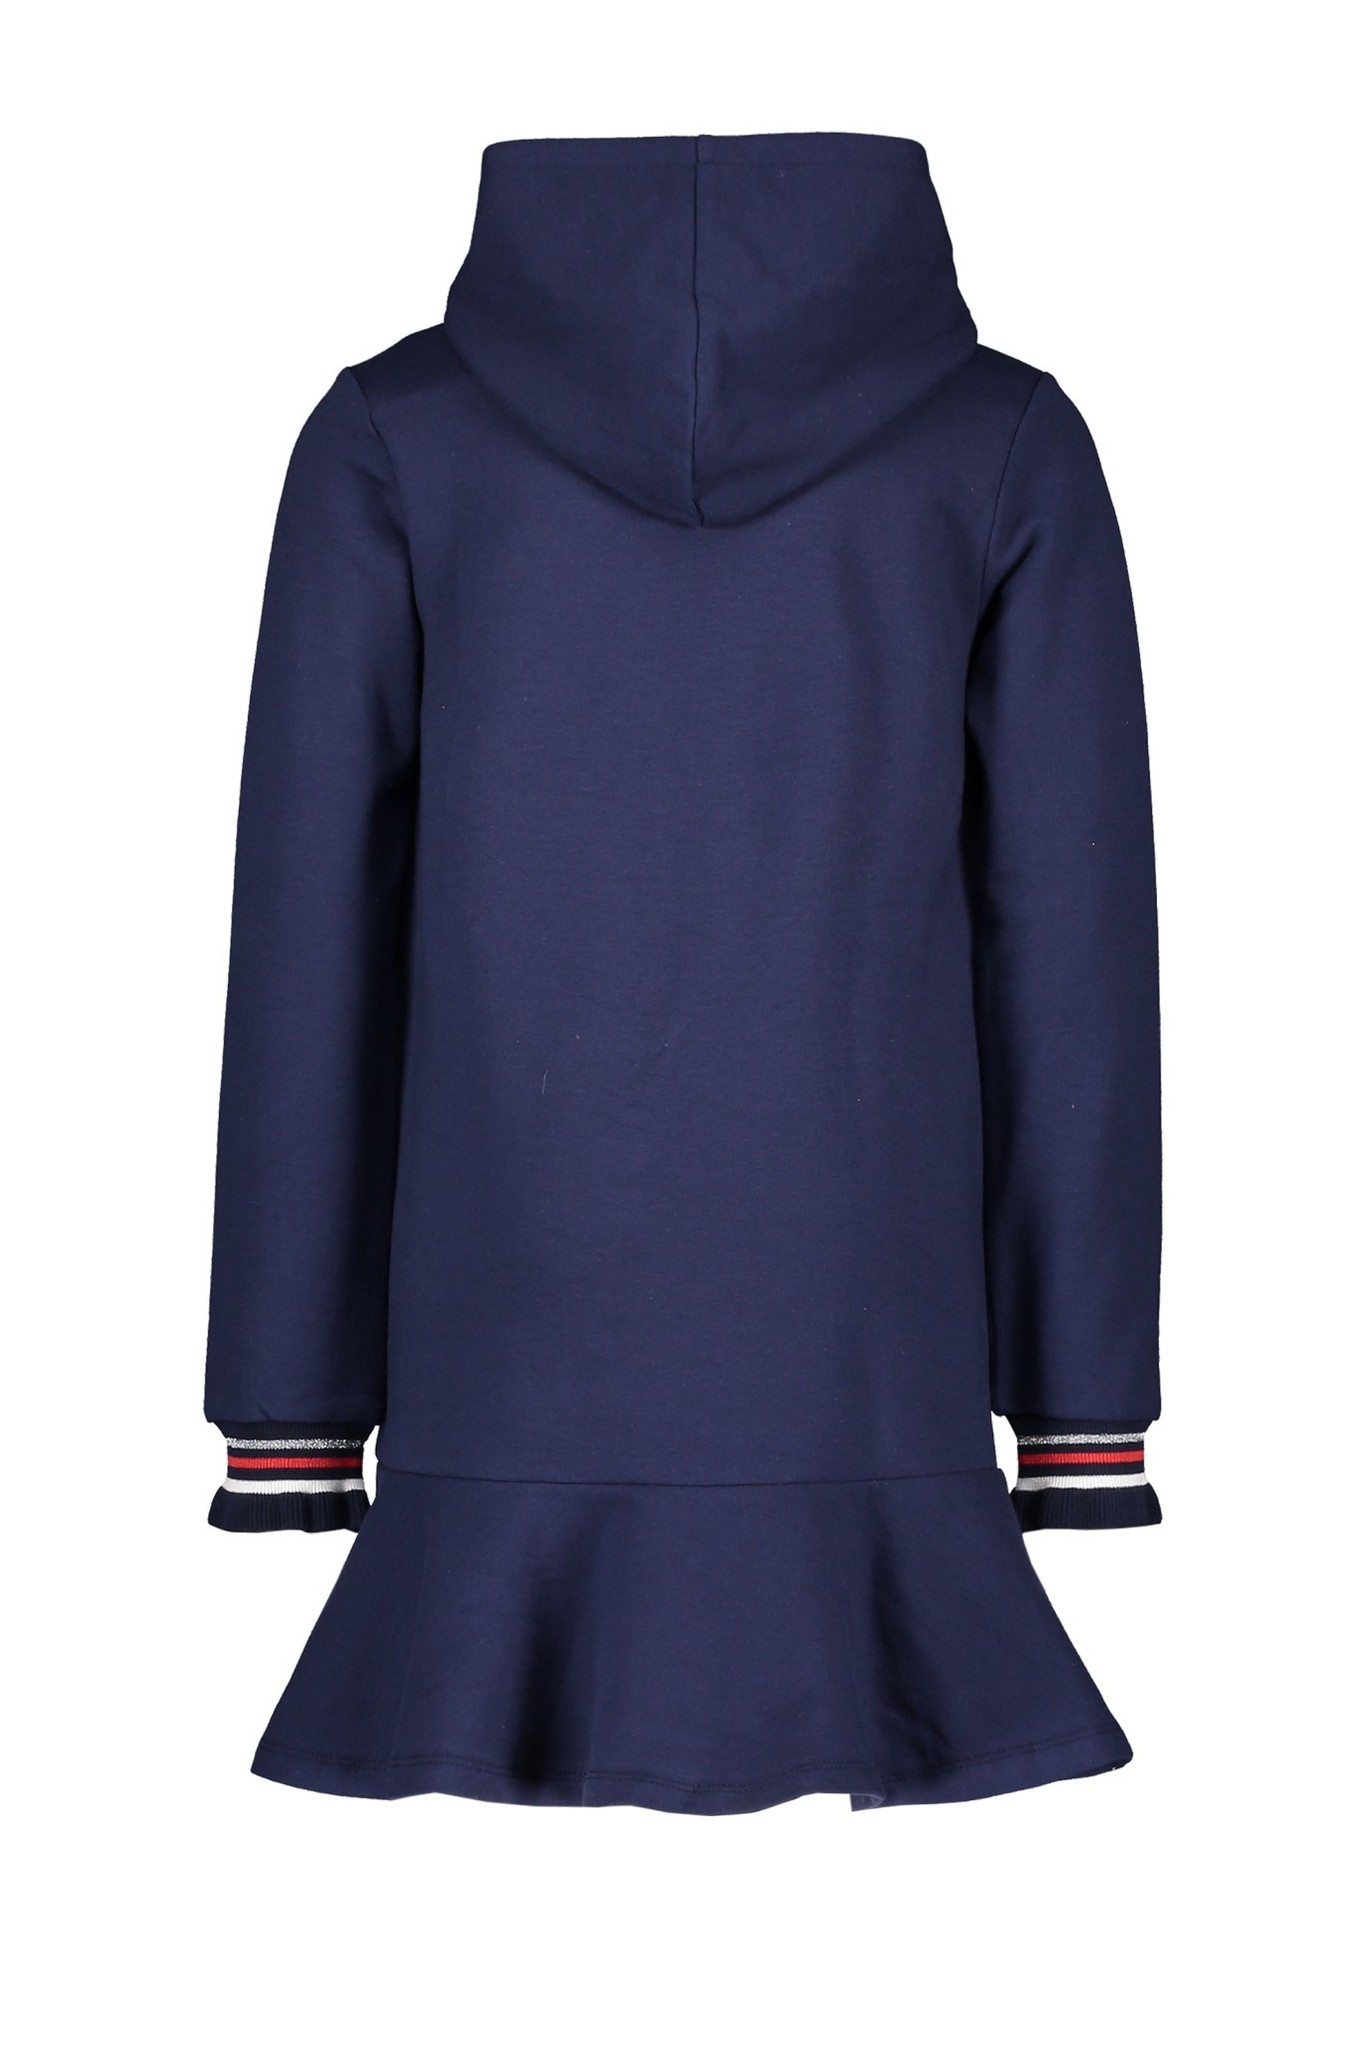 le chic Le Chic Girls Hooded Dress - 5841 AW21